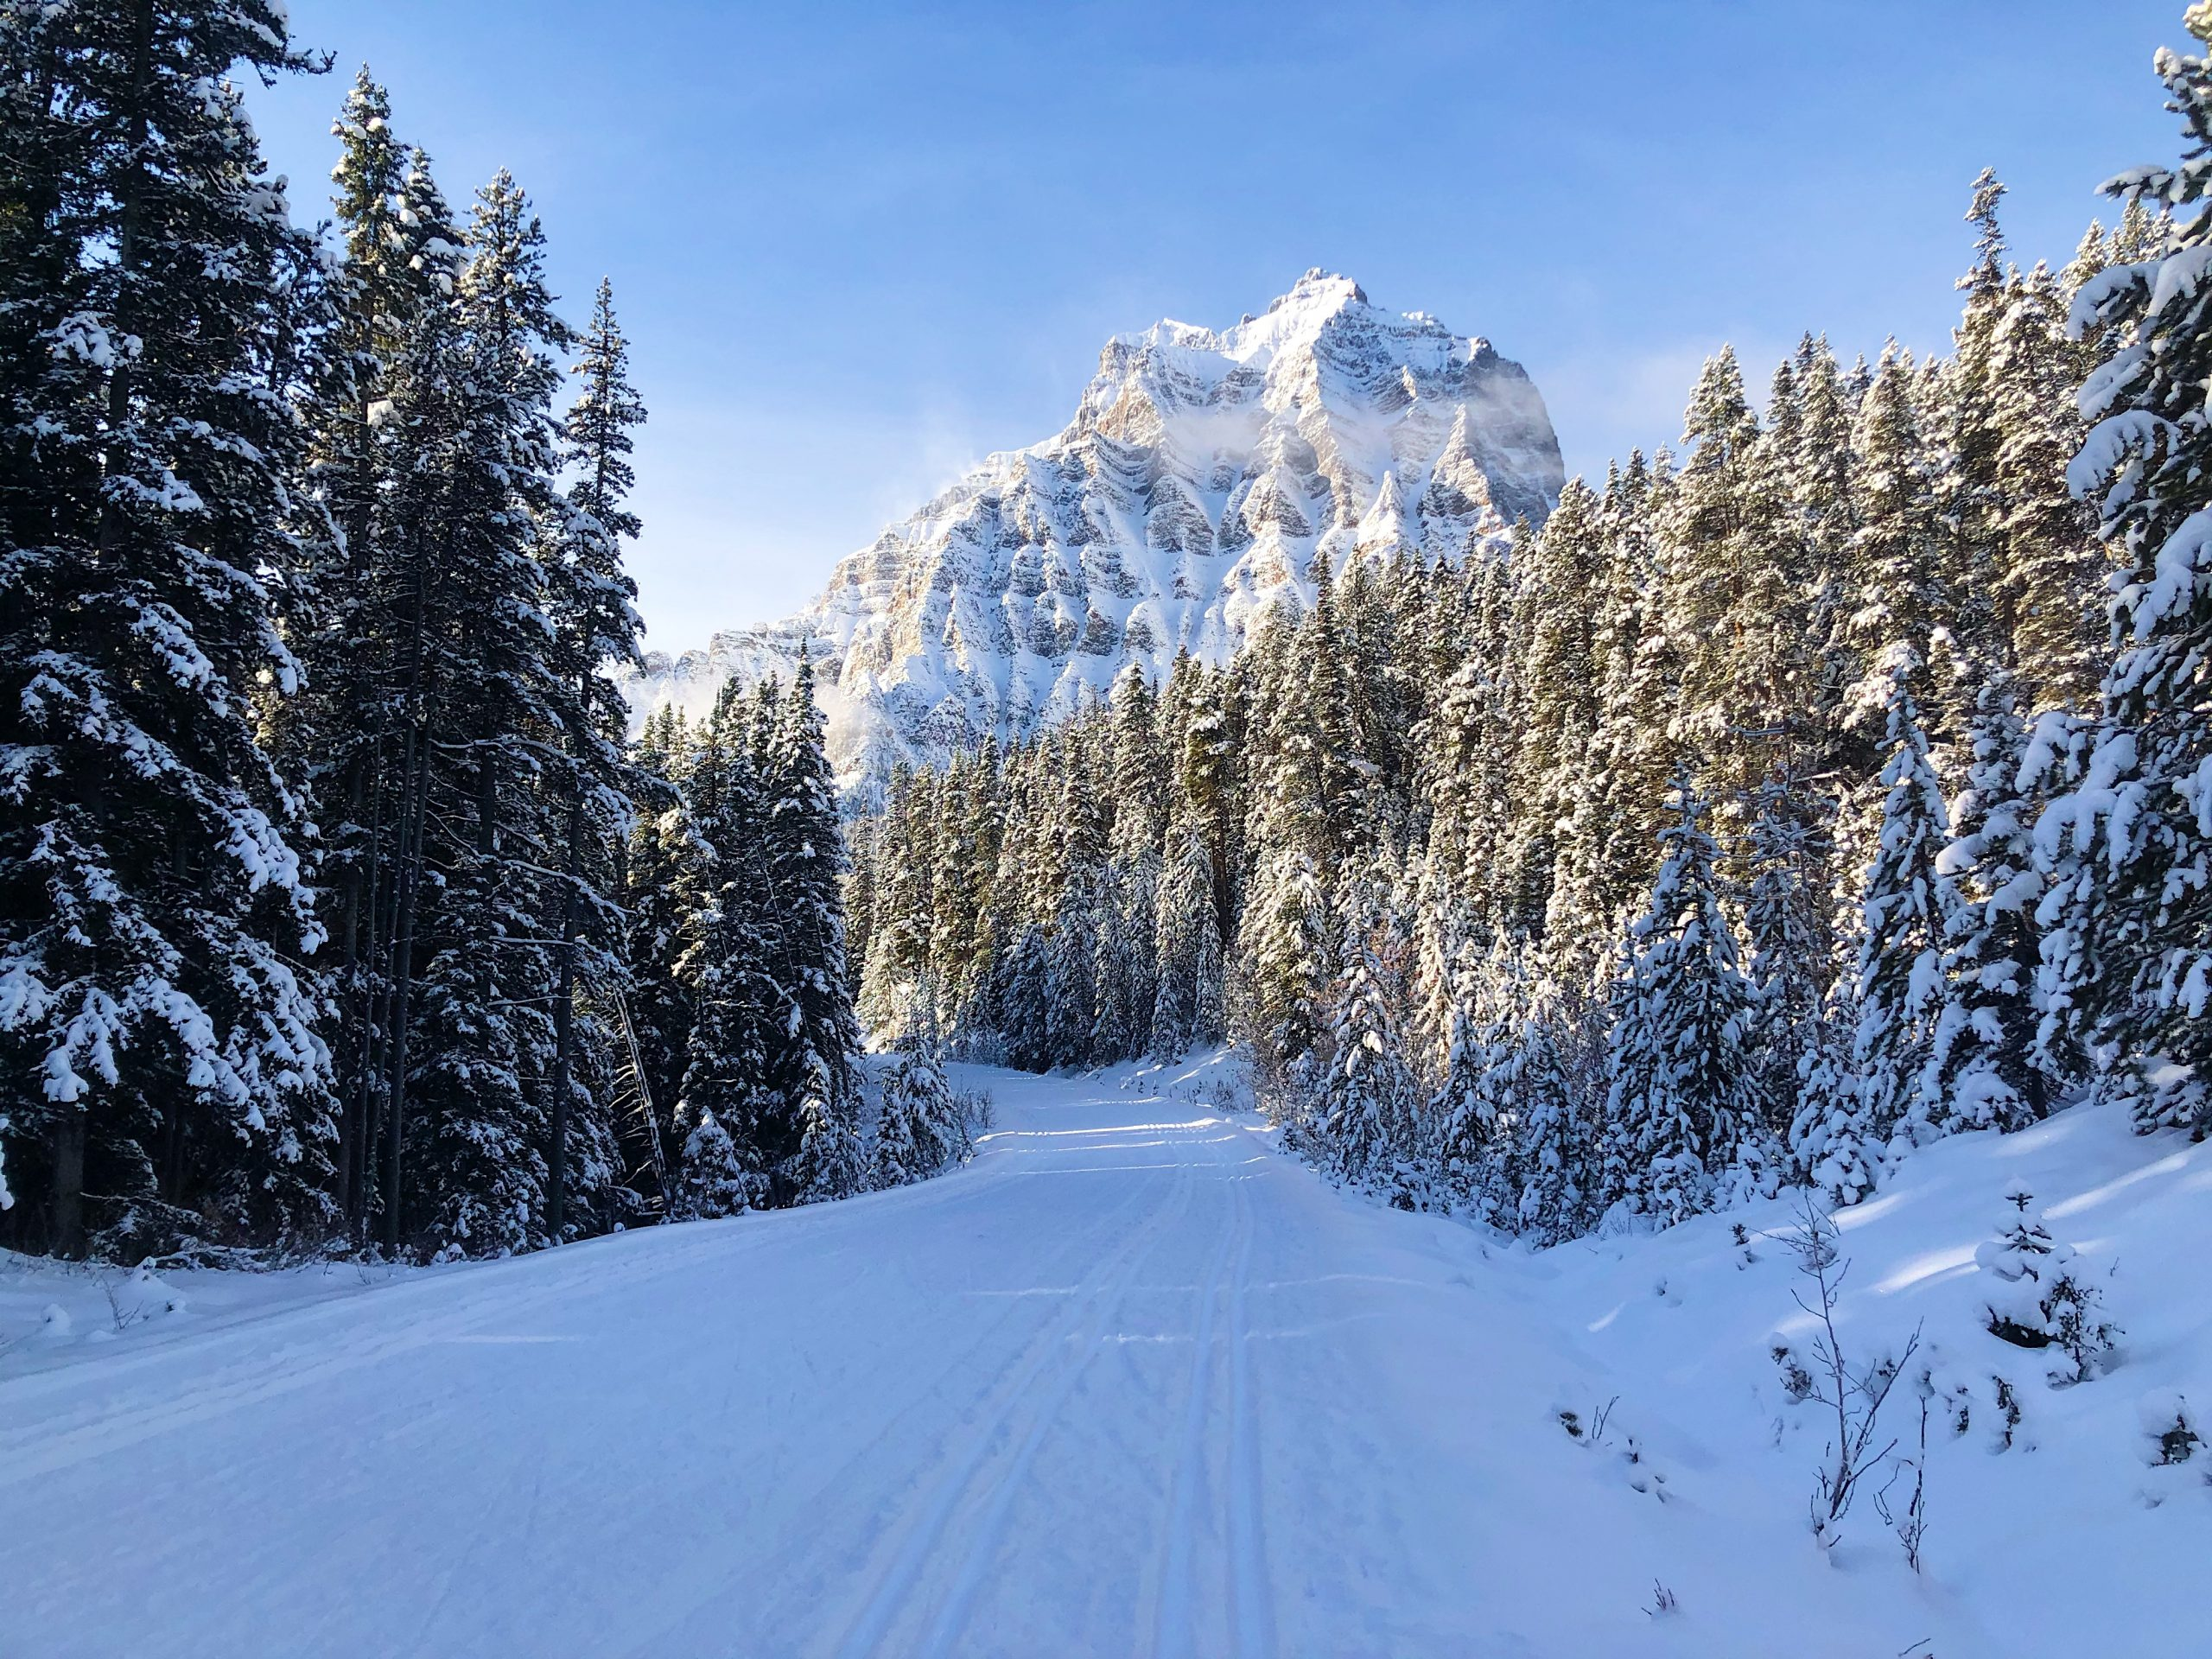 XC Skiing Moraine Lake Road in Banff National Park (Perfect For Beginners!) via @outandacross